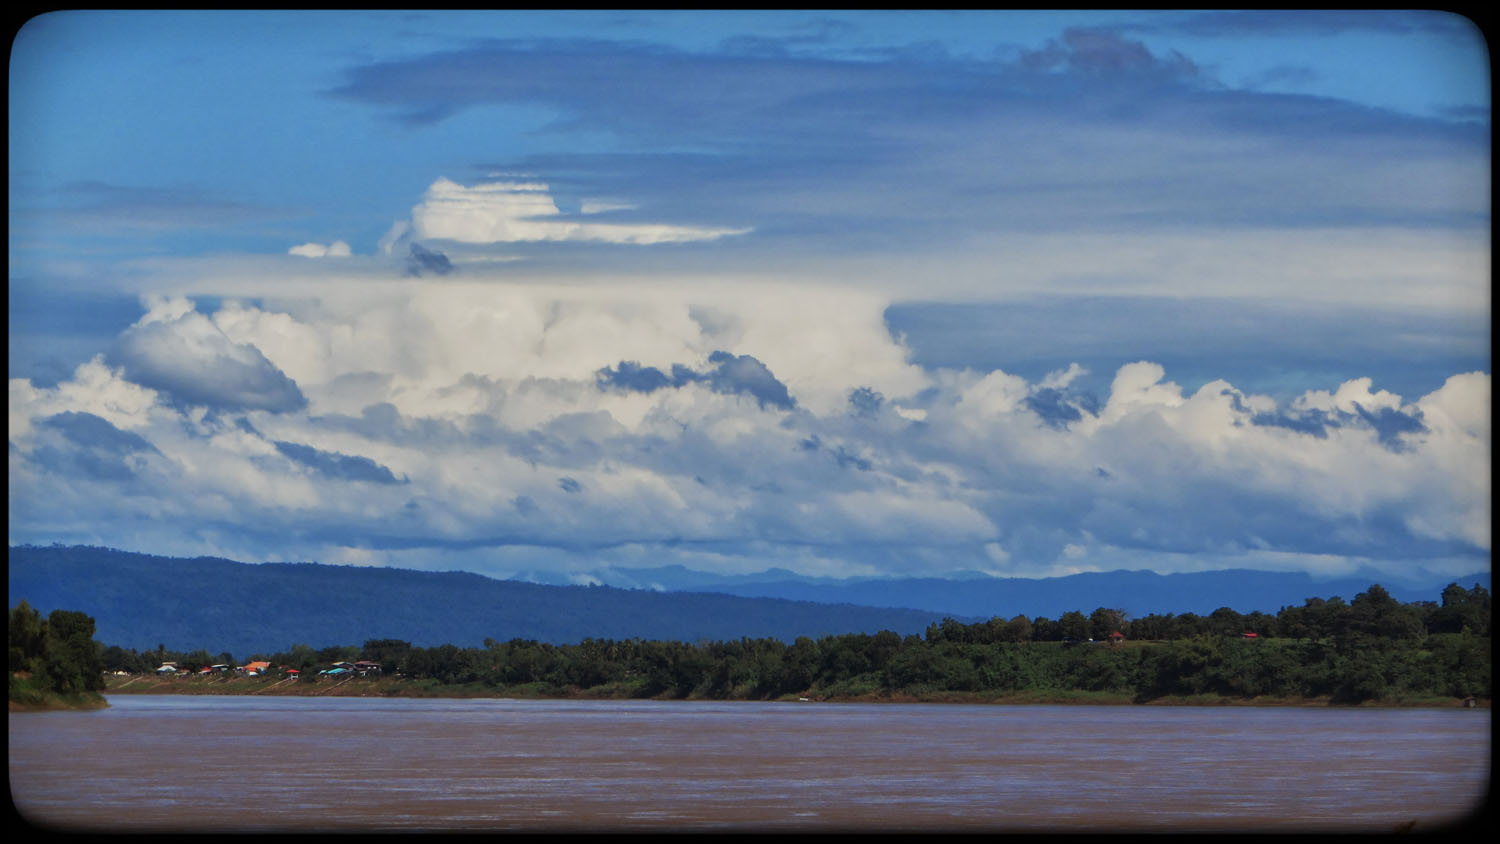 View of Mekong and Lao